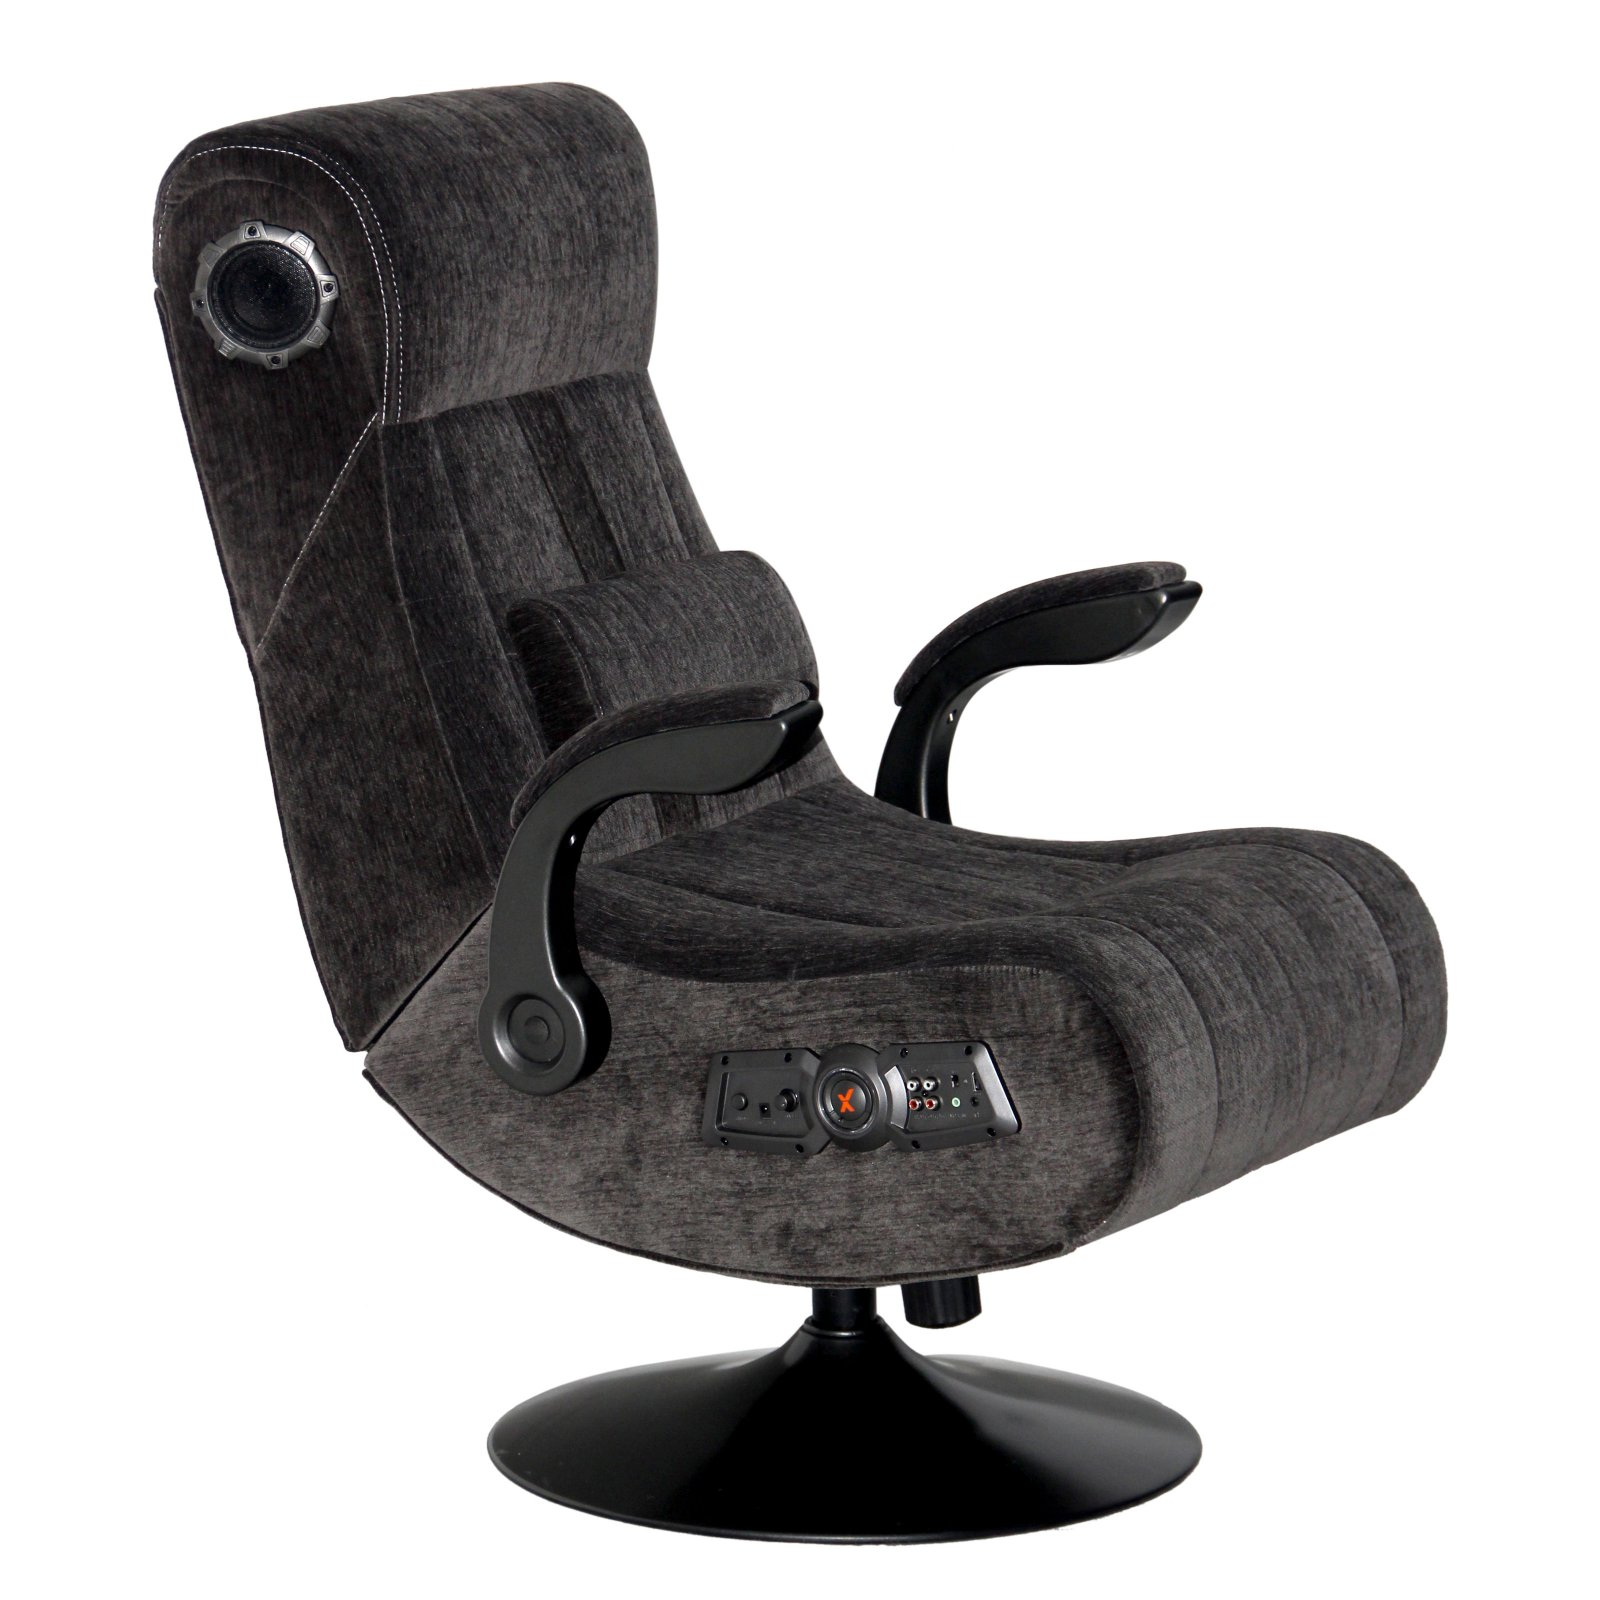 walmart game chairs x rocker office pedestal video chair 2.1 with wireless bluetooth audio - charcoal walmart.com